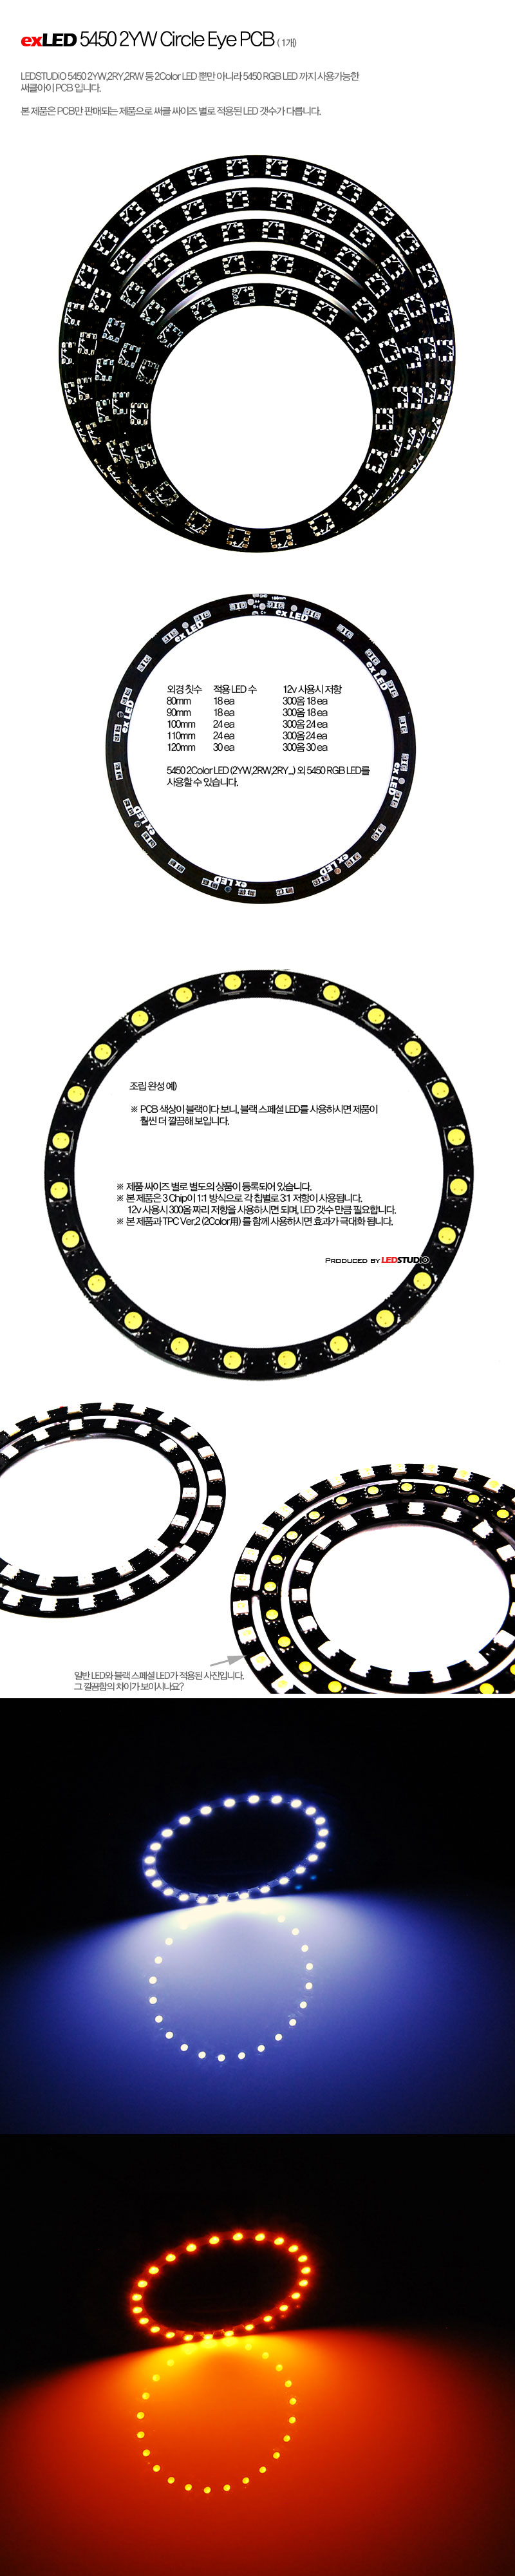 5450 2Color/RGB용 Circle Eye PCB - 110mm